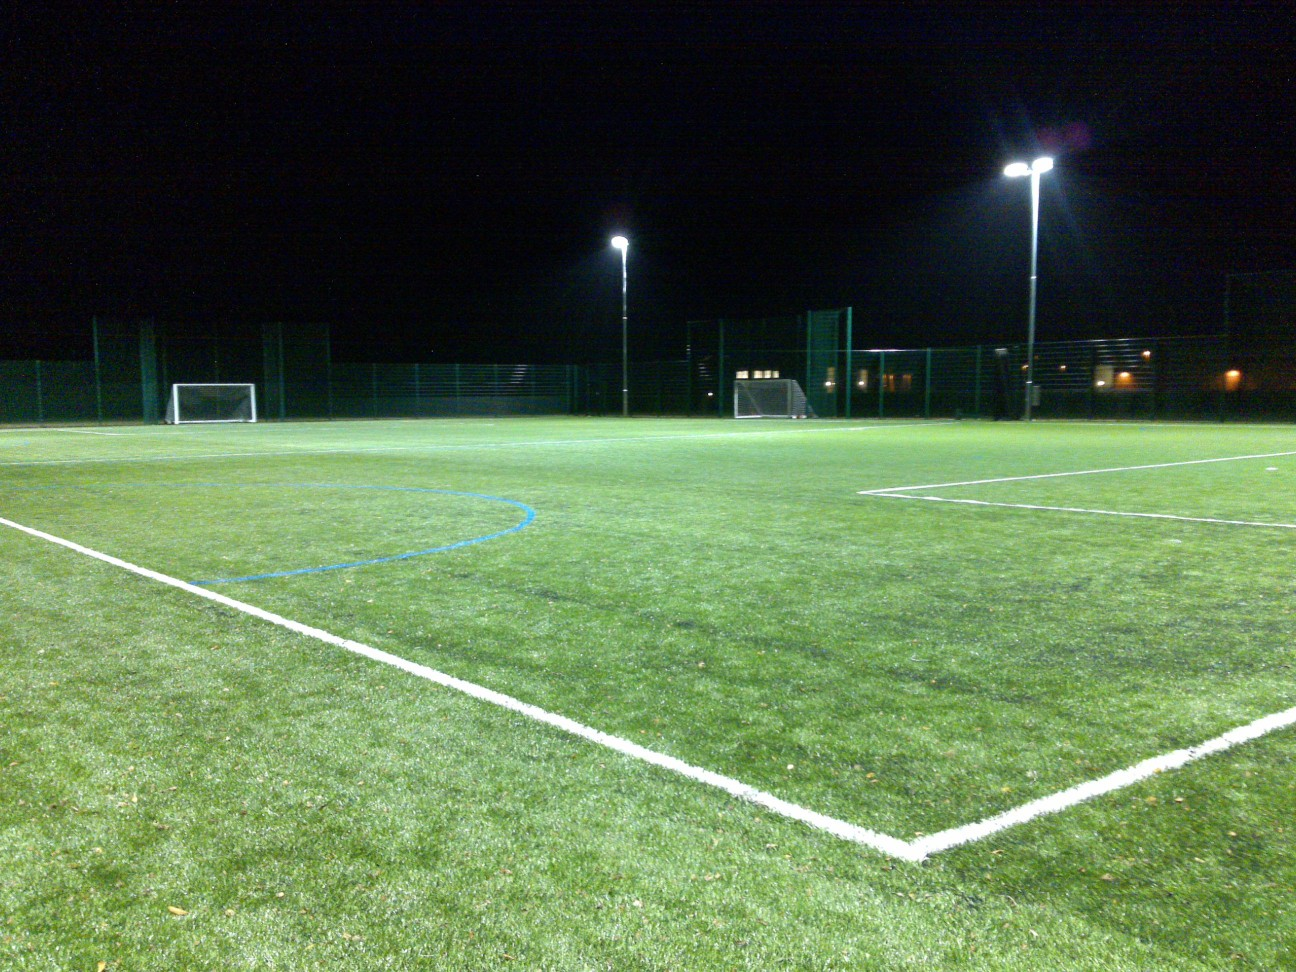 3G pitch costs will vary according to the specification of the pitch, as well as any extras like fencing and floodlighting